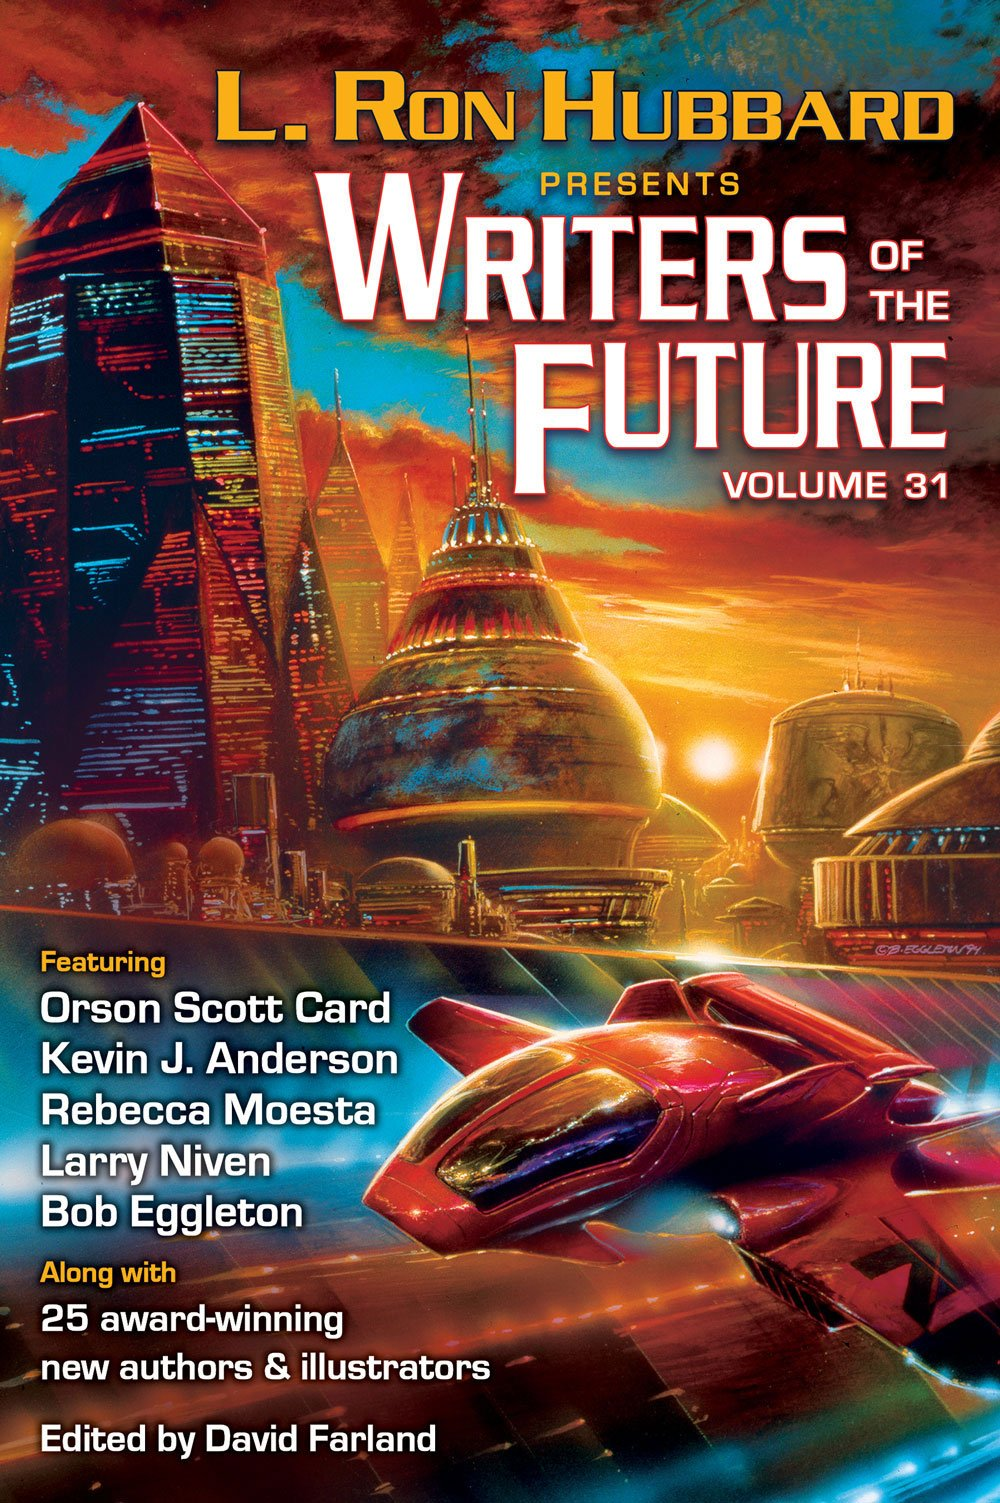 Writers of the Future Volume 31 (L. Ron Hubbard Presents Writers of the  Future): L. Ron Hubbard, Kevin J. Anderson, Larry Niven, Rebecca Moesta, ...